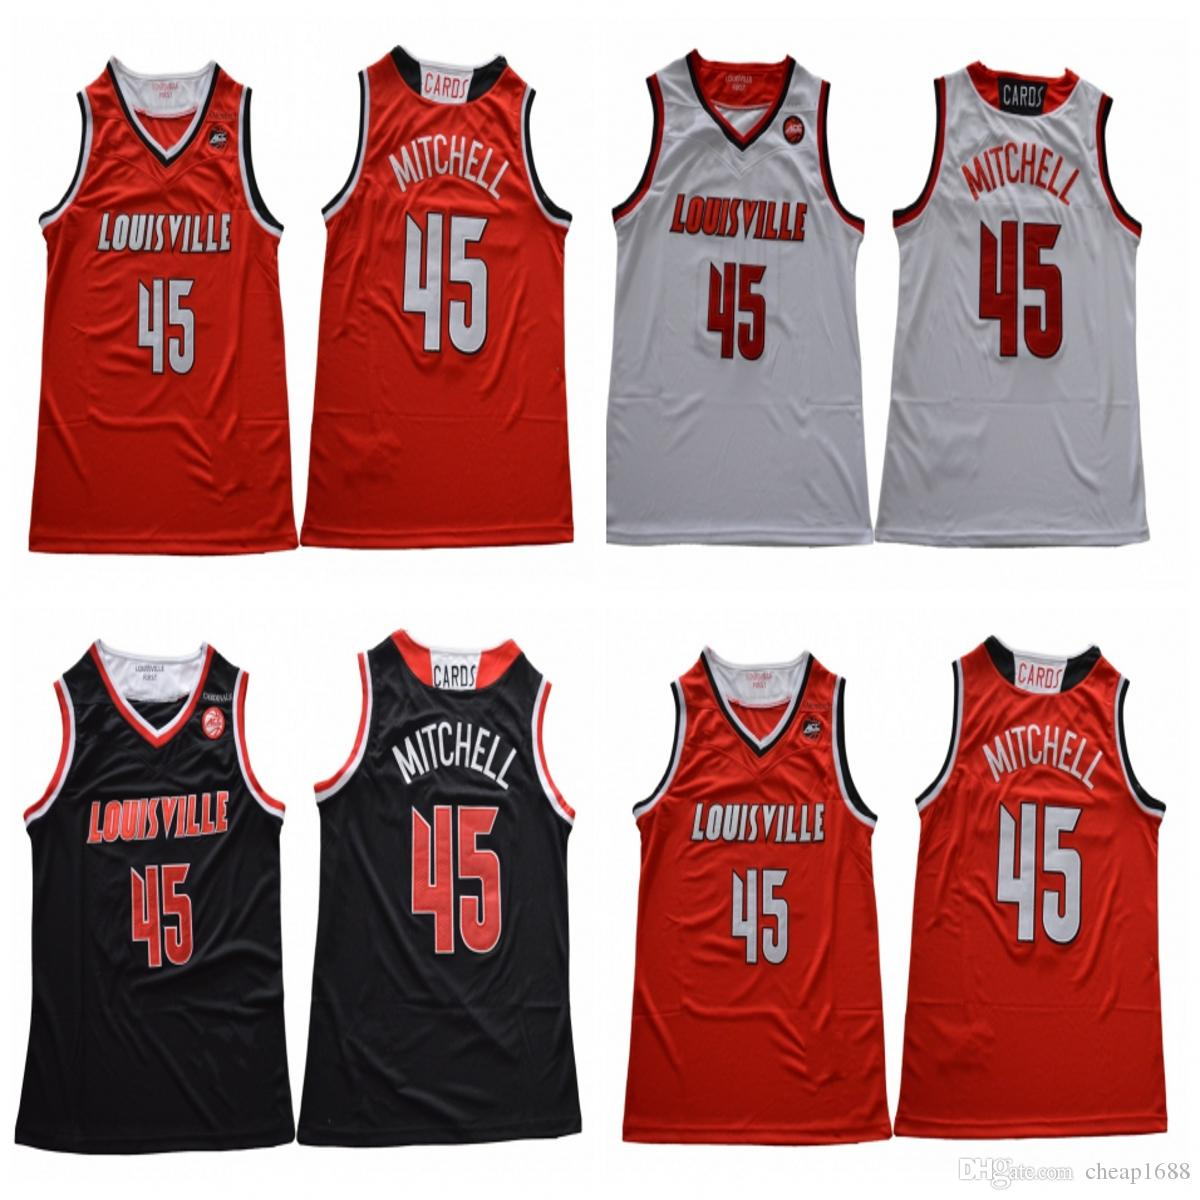 eed33d1b77b 2019 NCAA Louisville Cardinals 45 Donovan HOT SALE Mitchell Best Quality Stitched  College Basketball White Red Black Jersey From Cheap1688